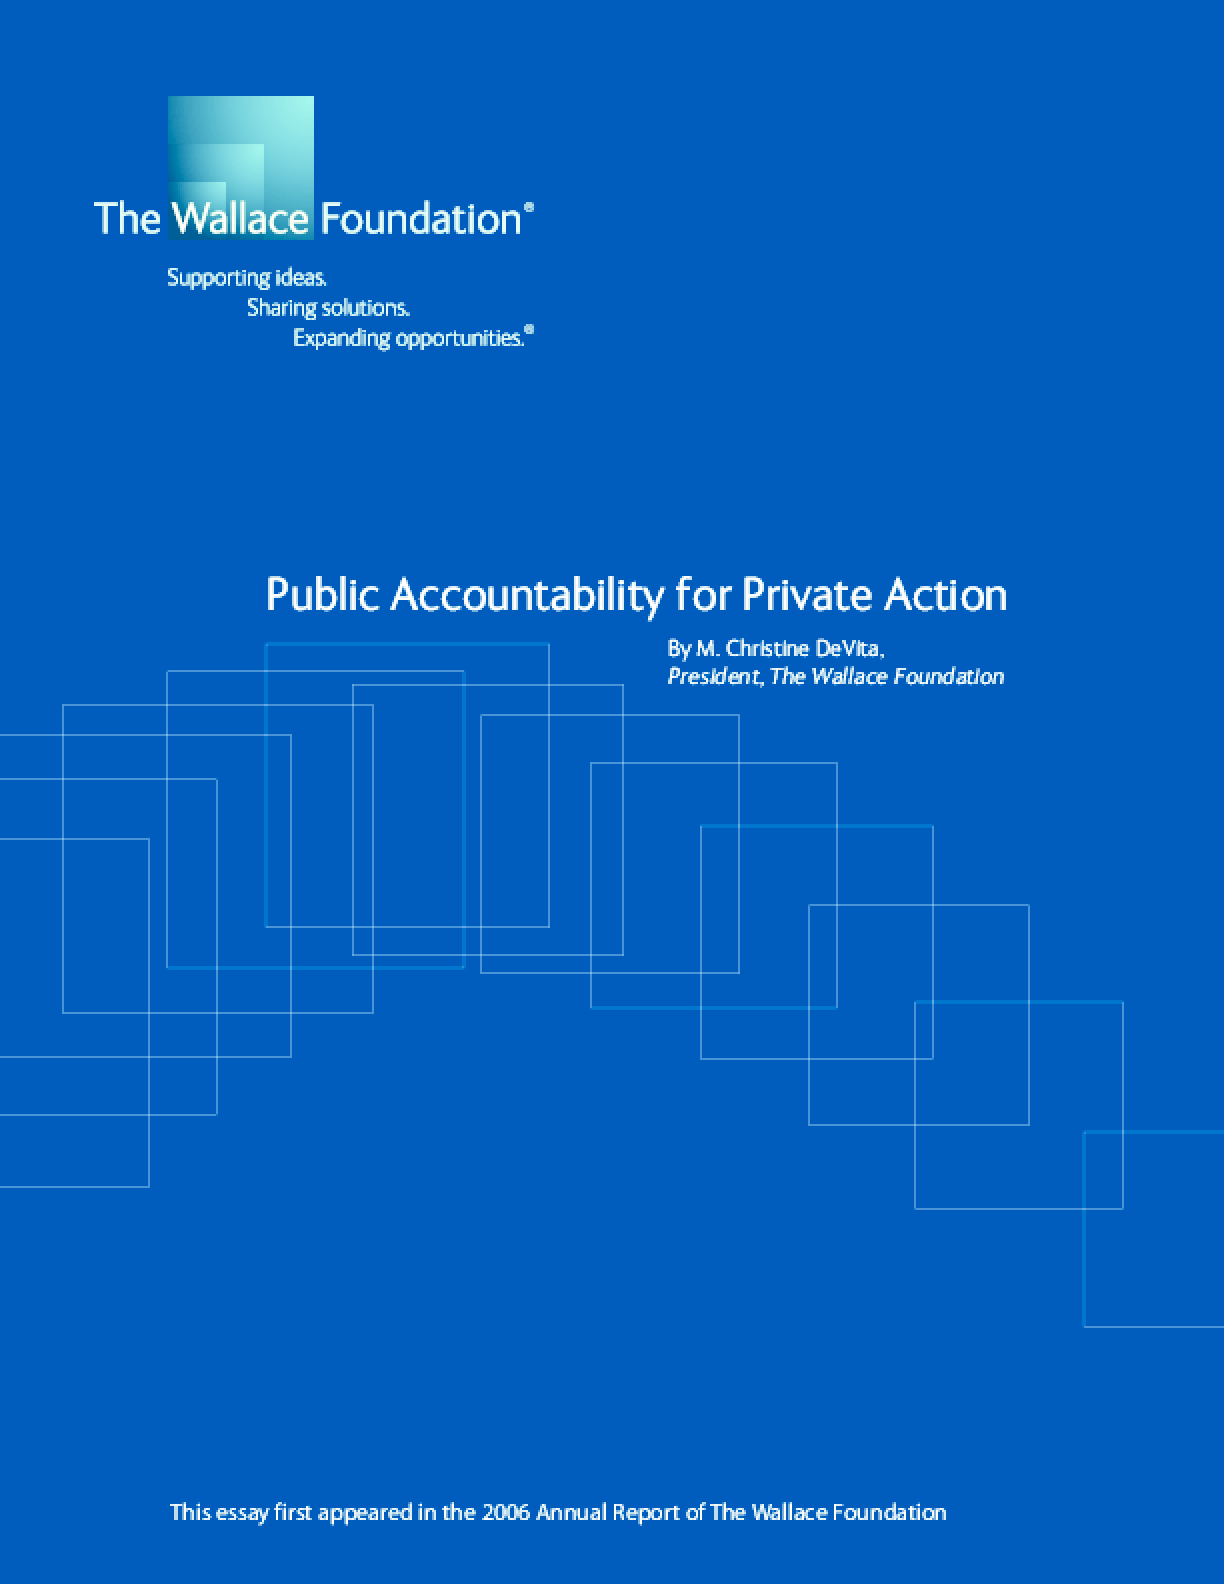 Public Accountability for Private Action